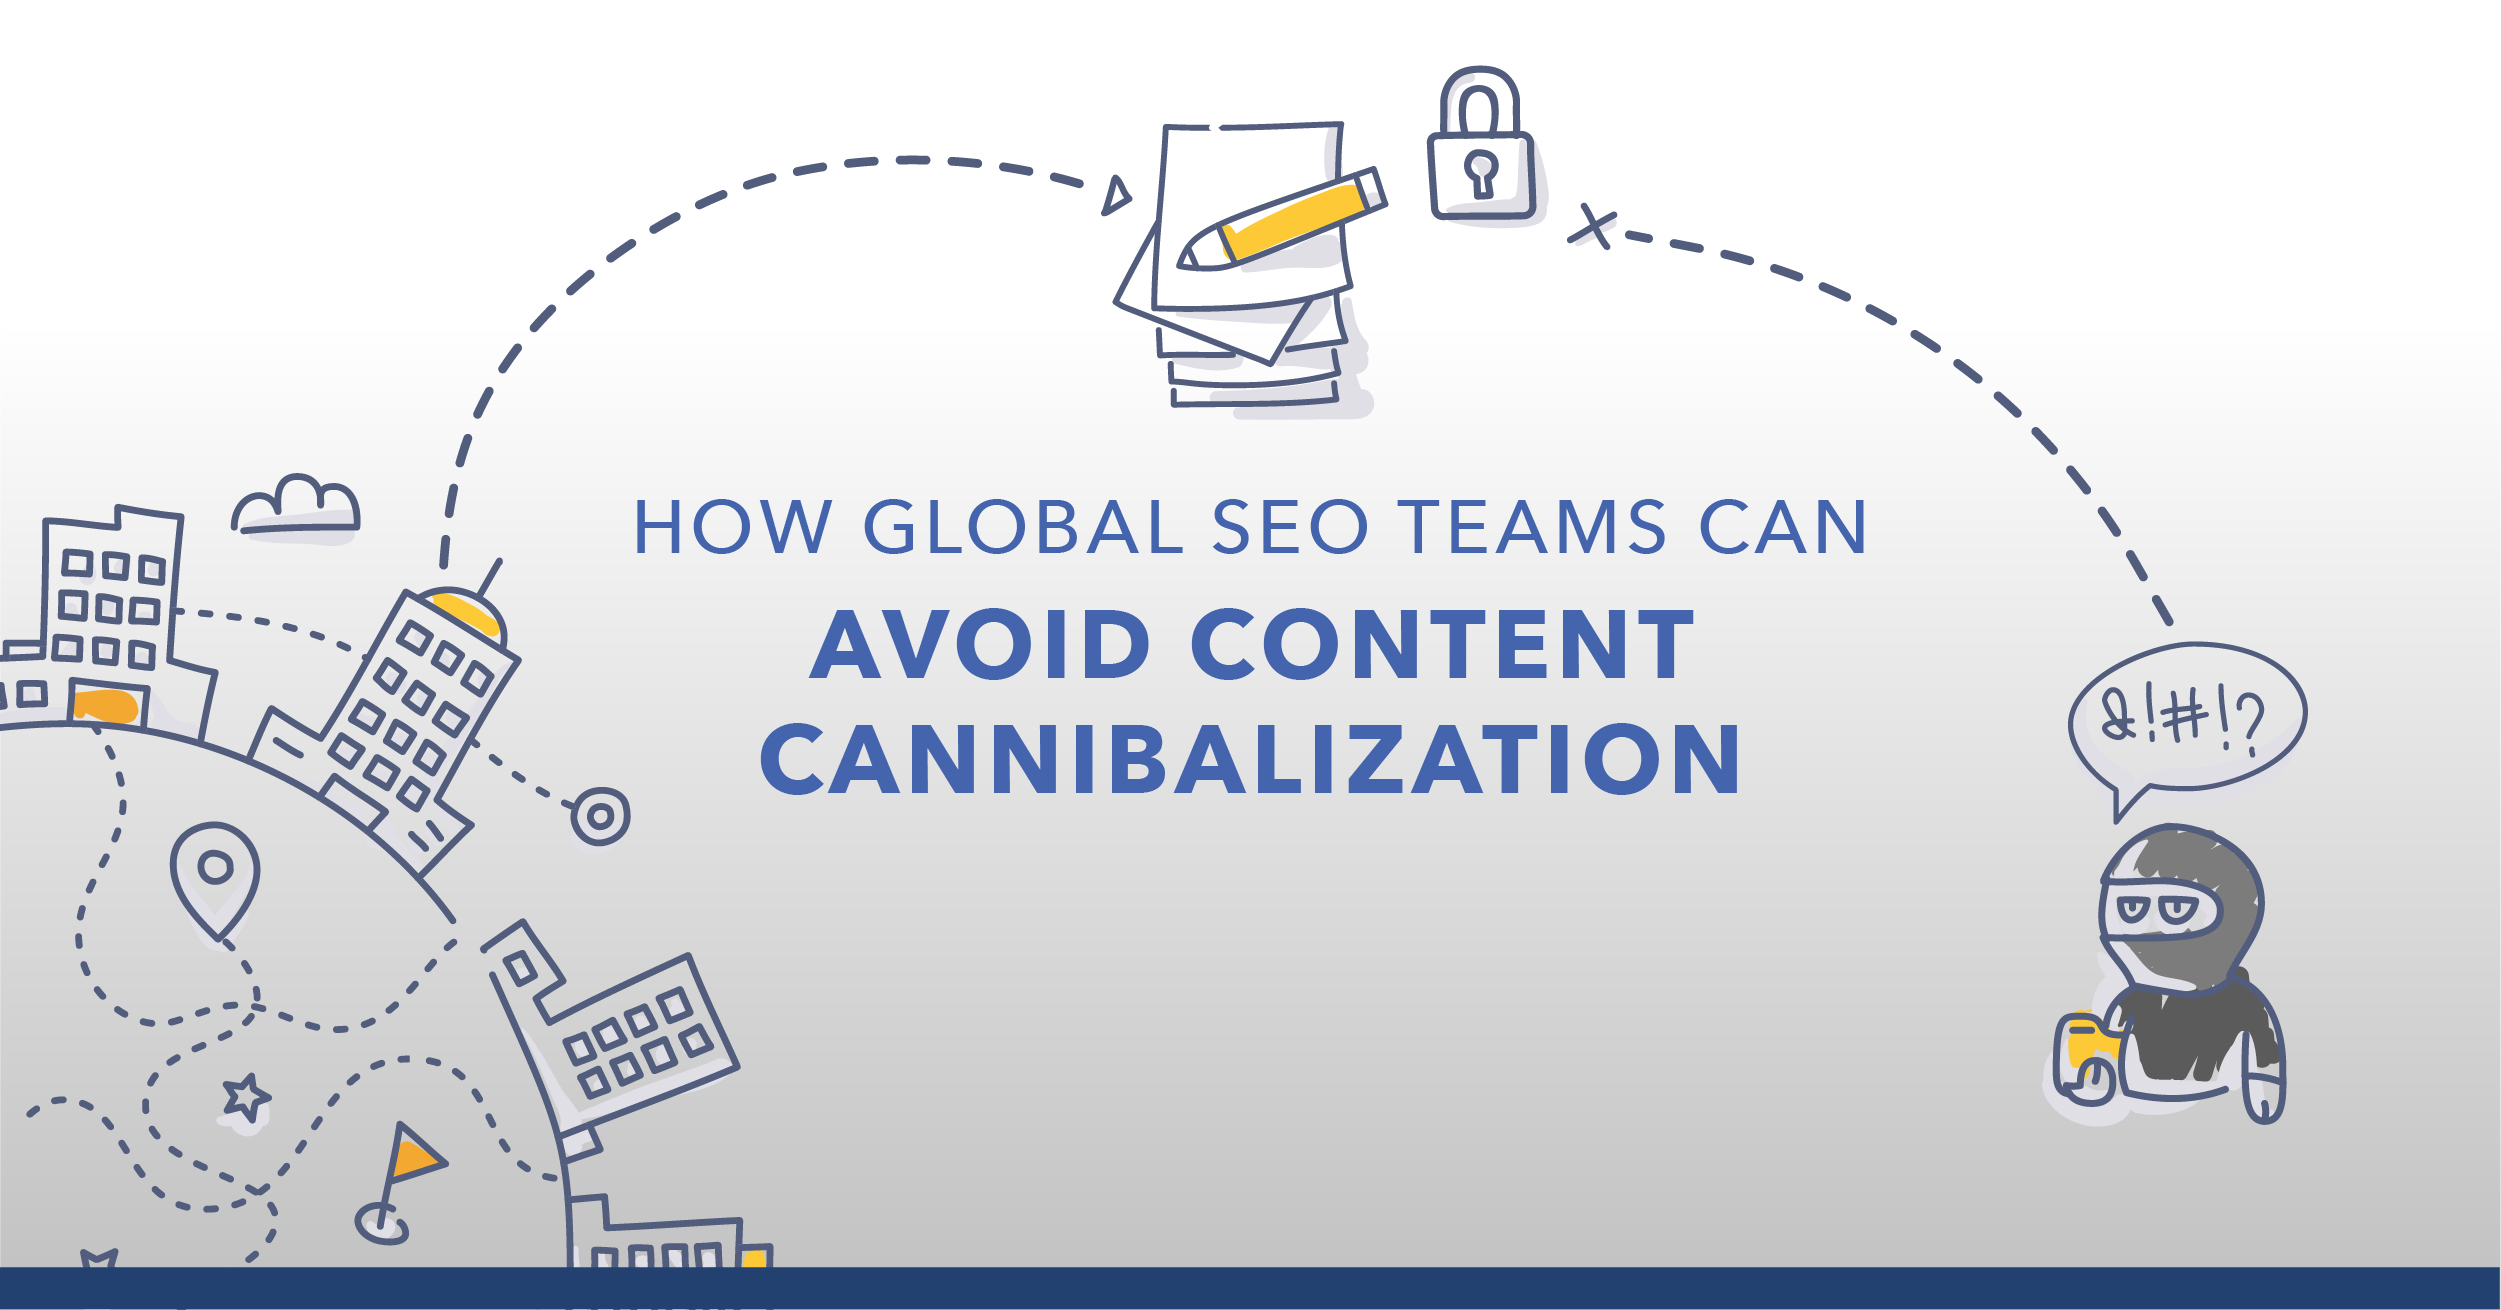 How to Identify and Fix Keyword Cannibalization for Global Teams